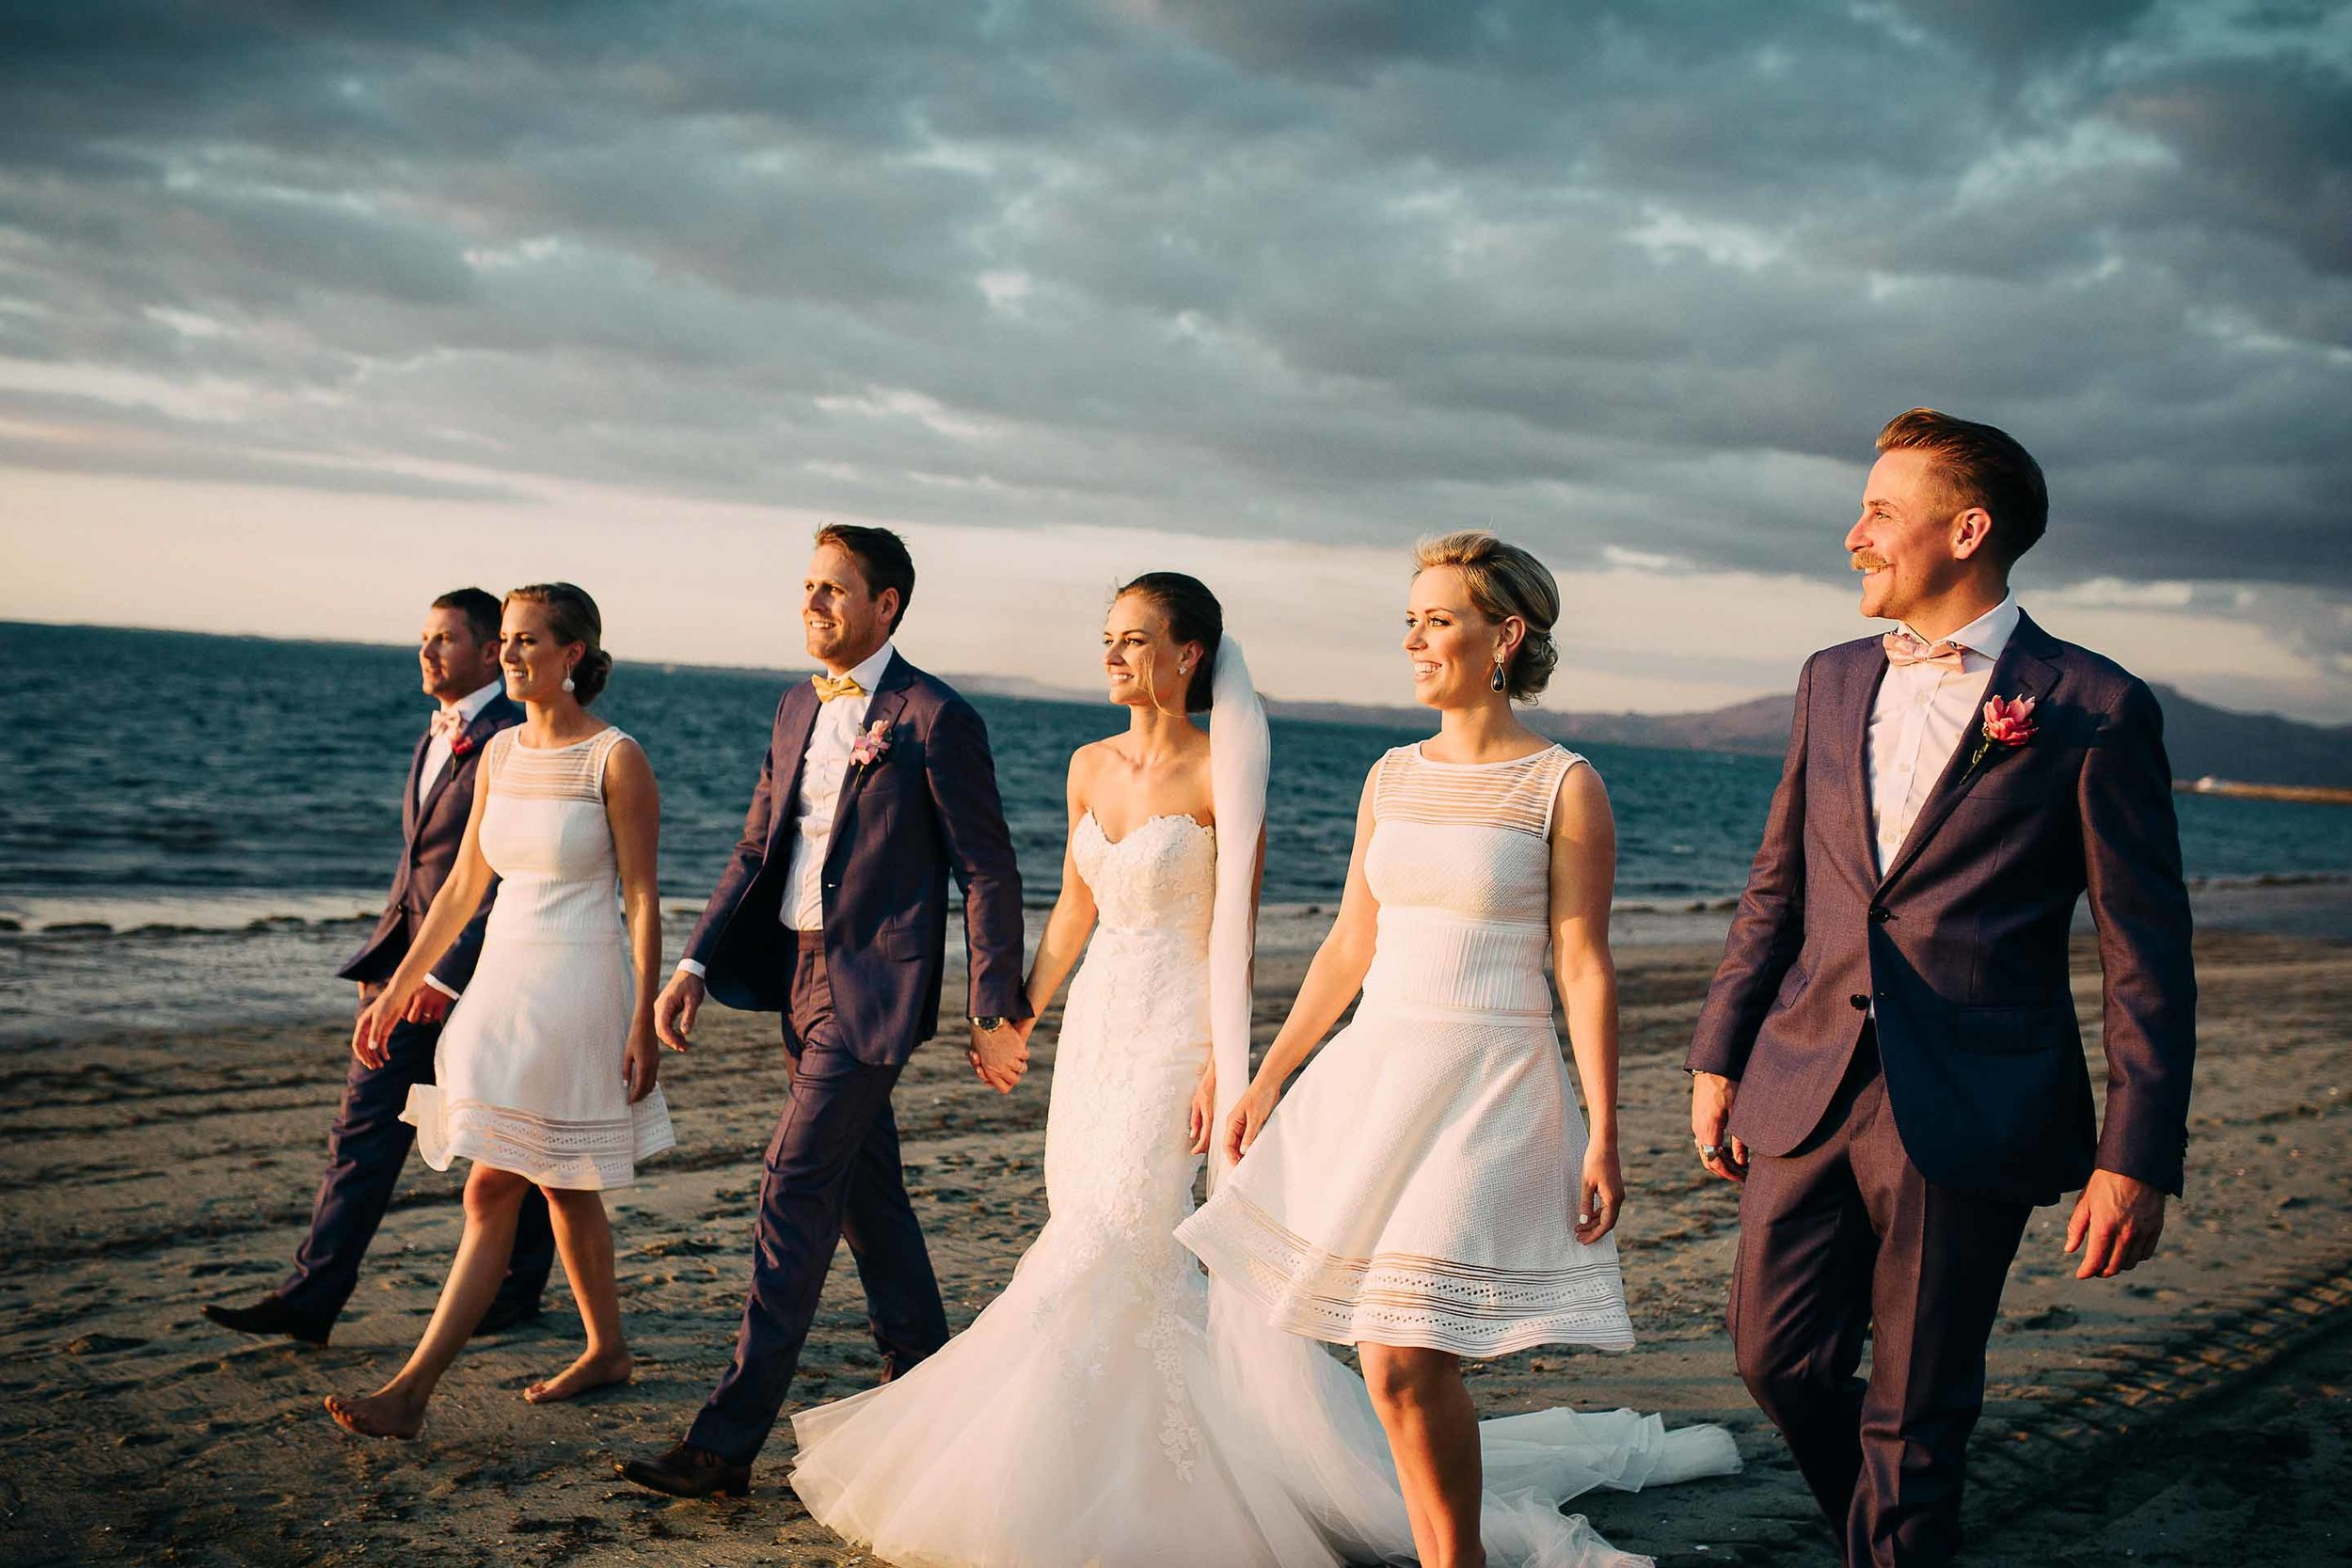 Bride Groom Bridesmaids and Groomsmen enjoy a stroll along the beach at sunset.